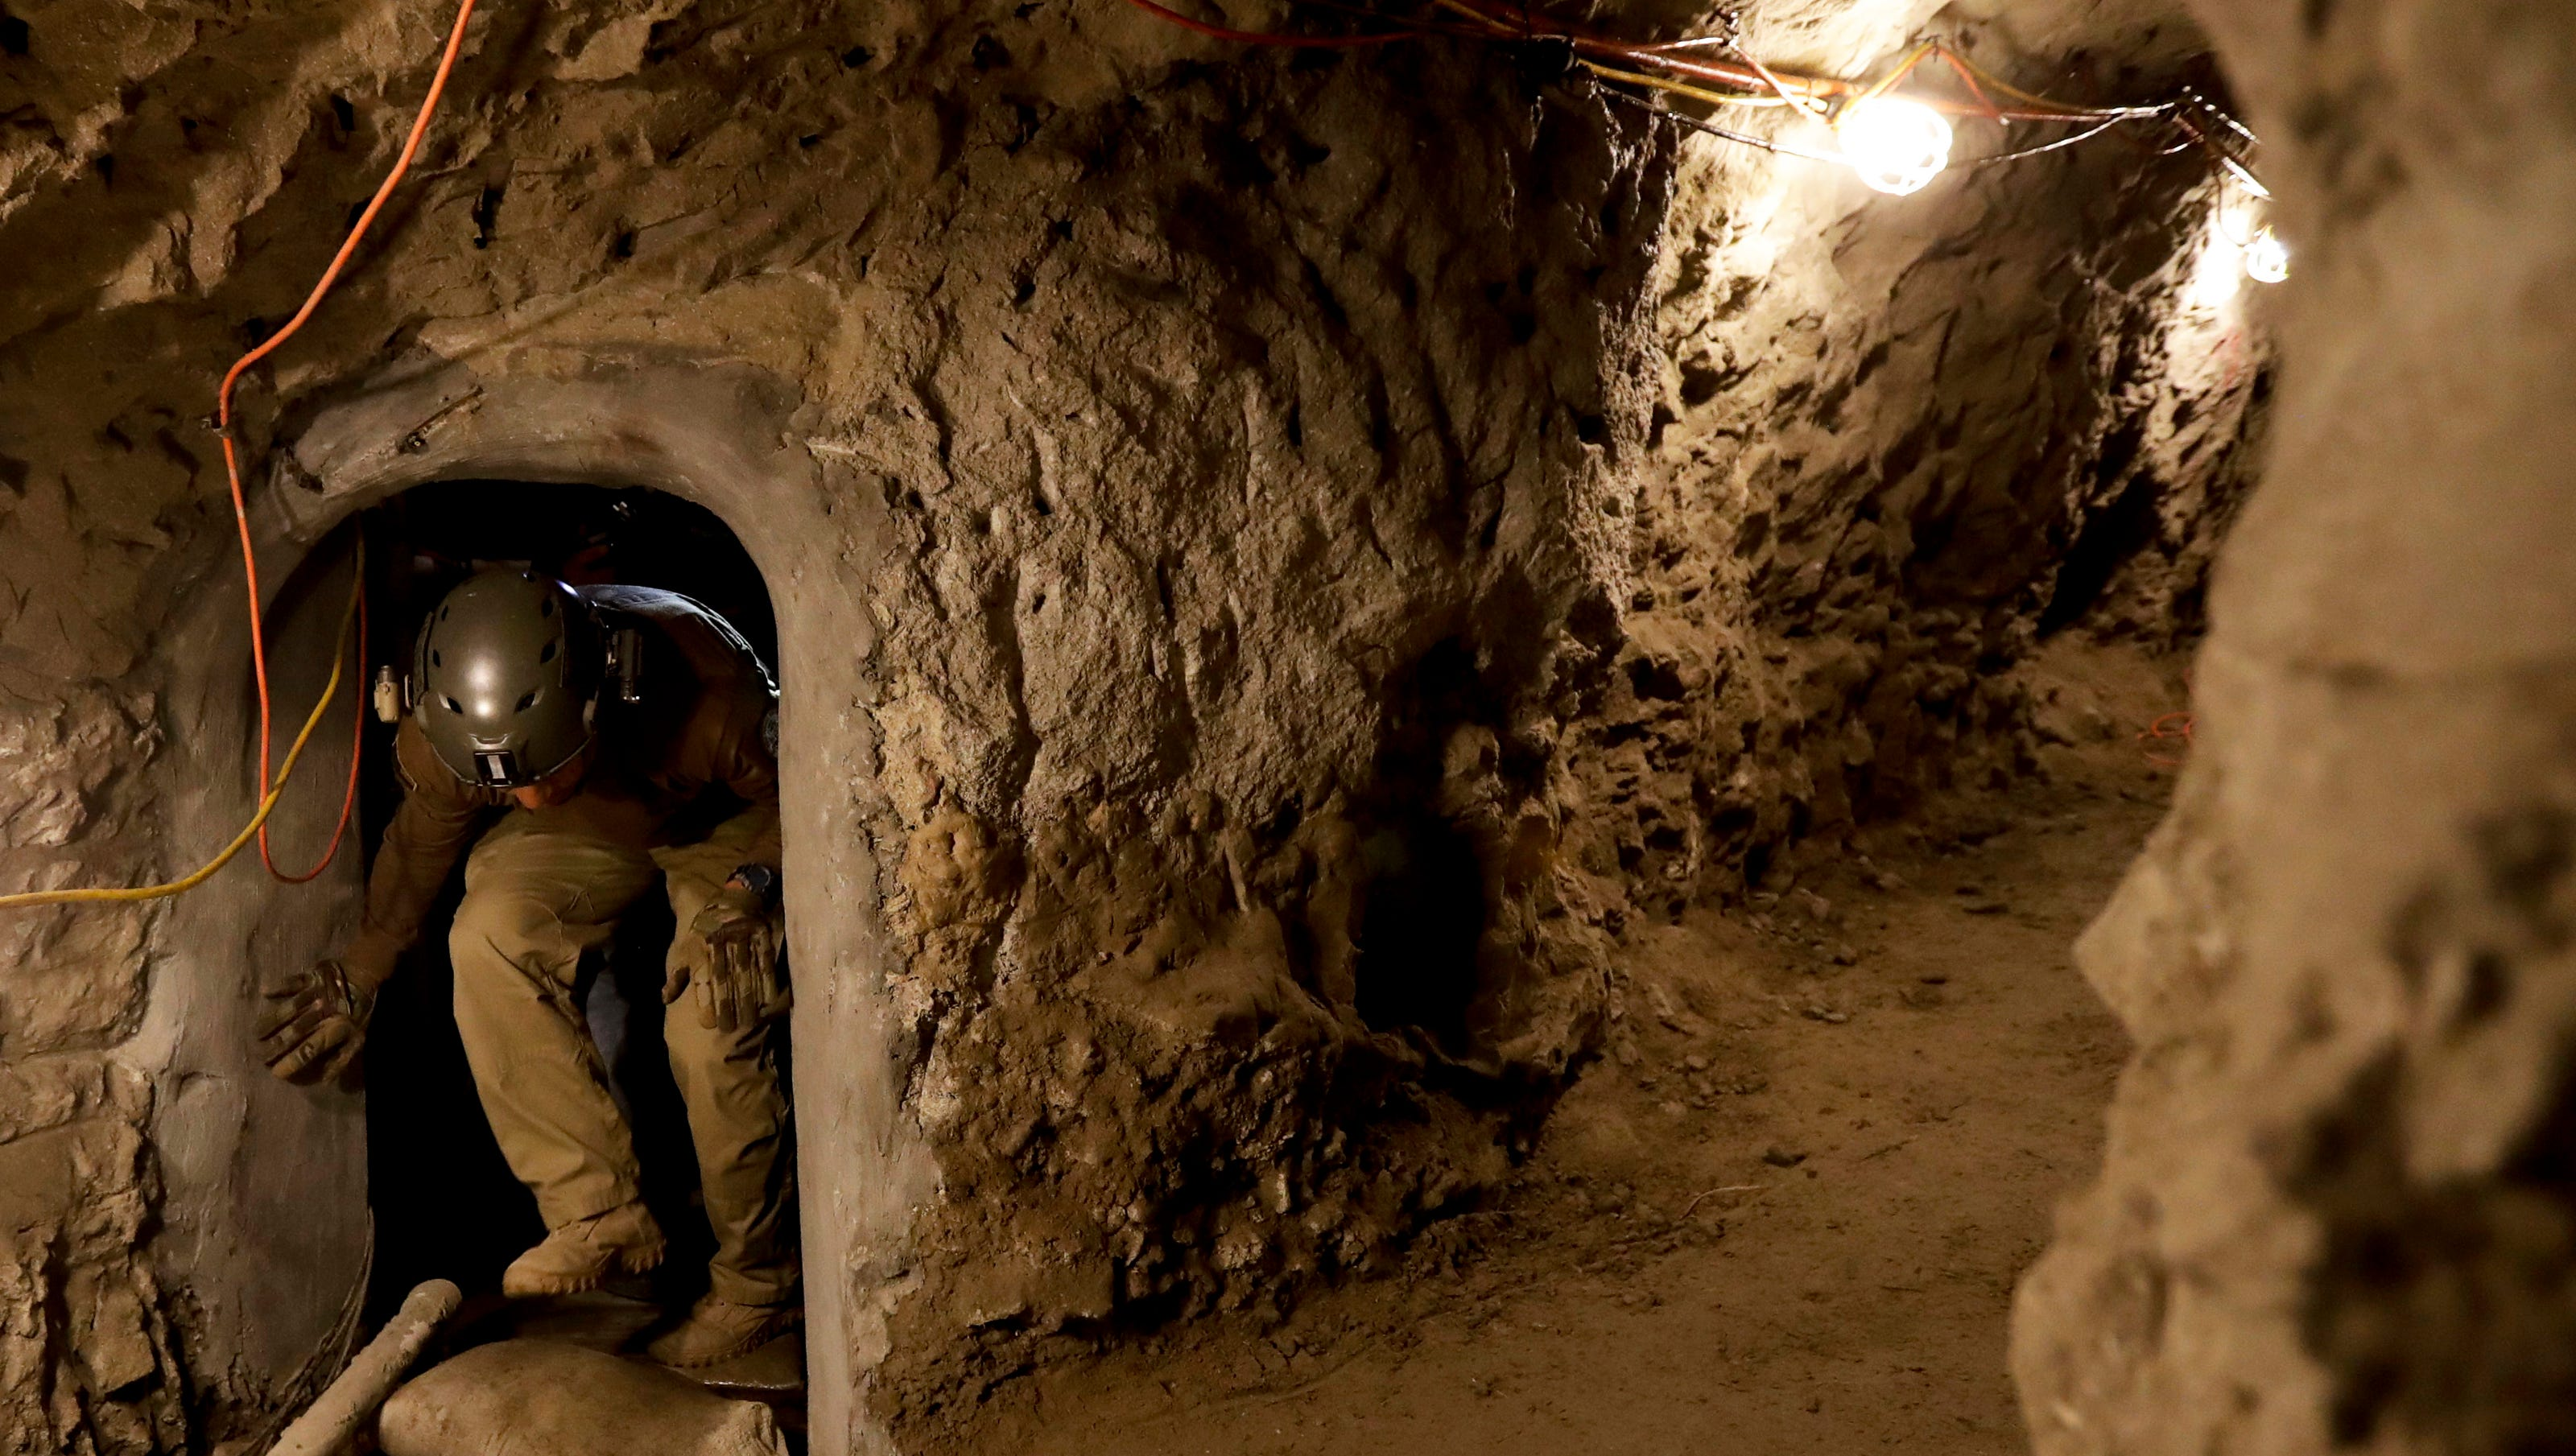 Amid border-wall debate, third drug tunnel found in less than a month in Nogales